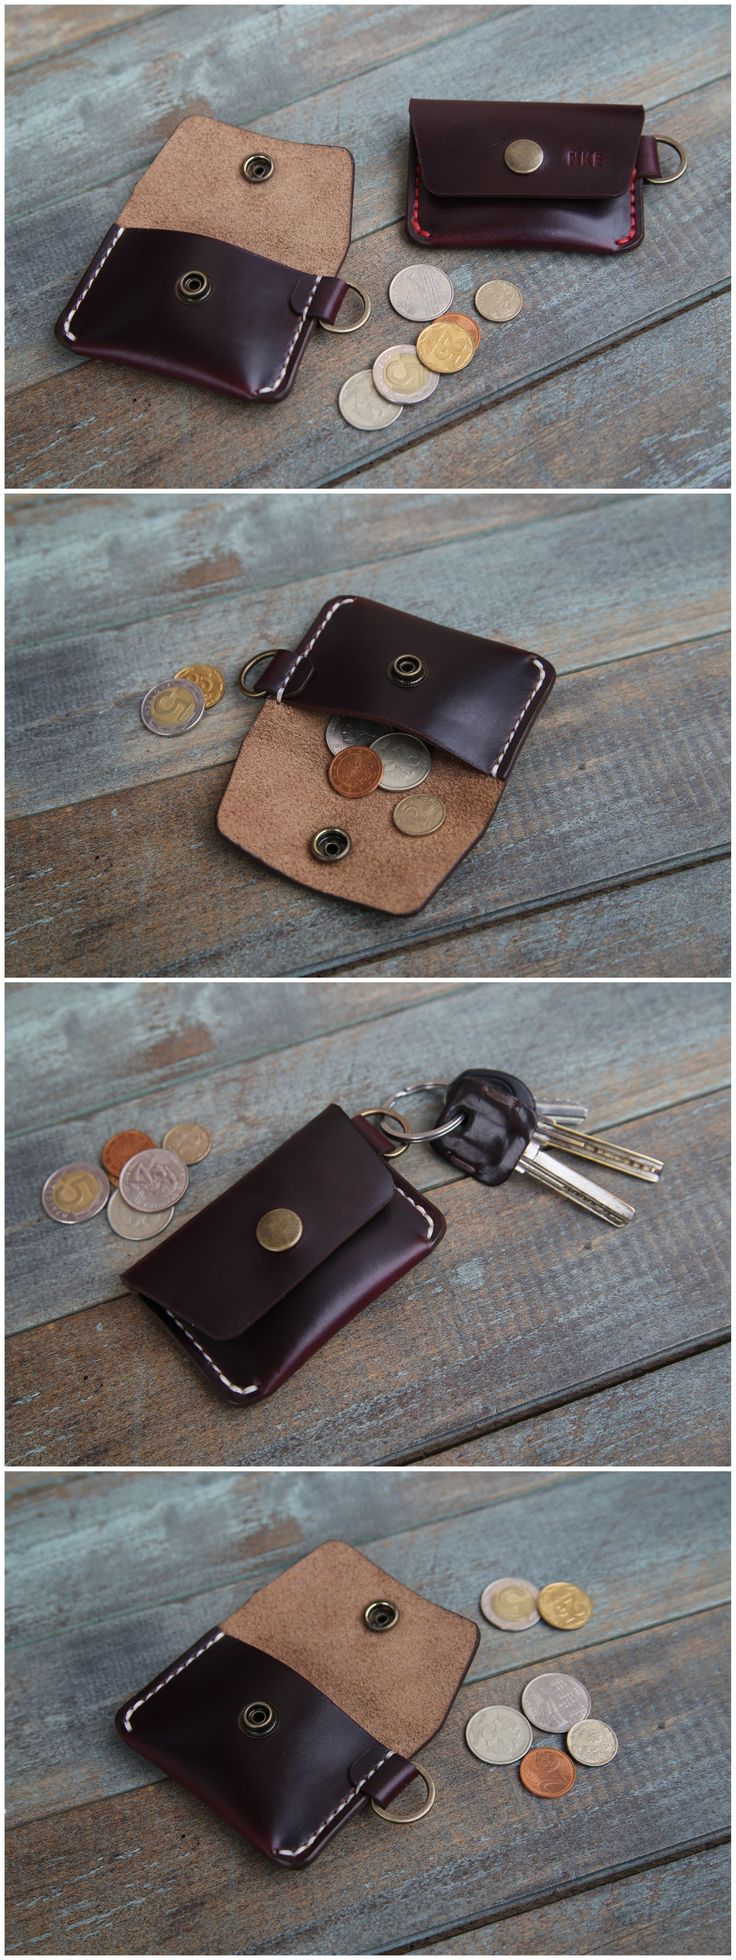 Leather coin purse, keychain coin purse, Coin Purse, Leather coin pouch, Mens coin purse, Leather coin wallet, Horween Chromexcel #8